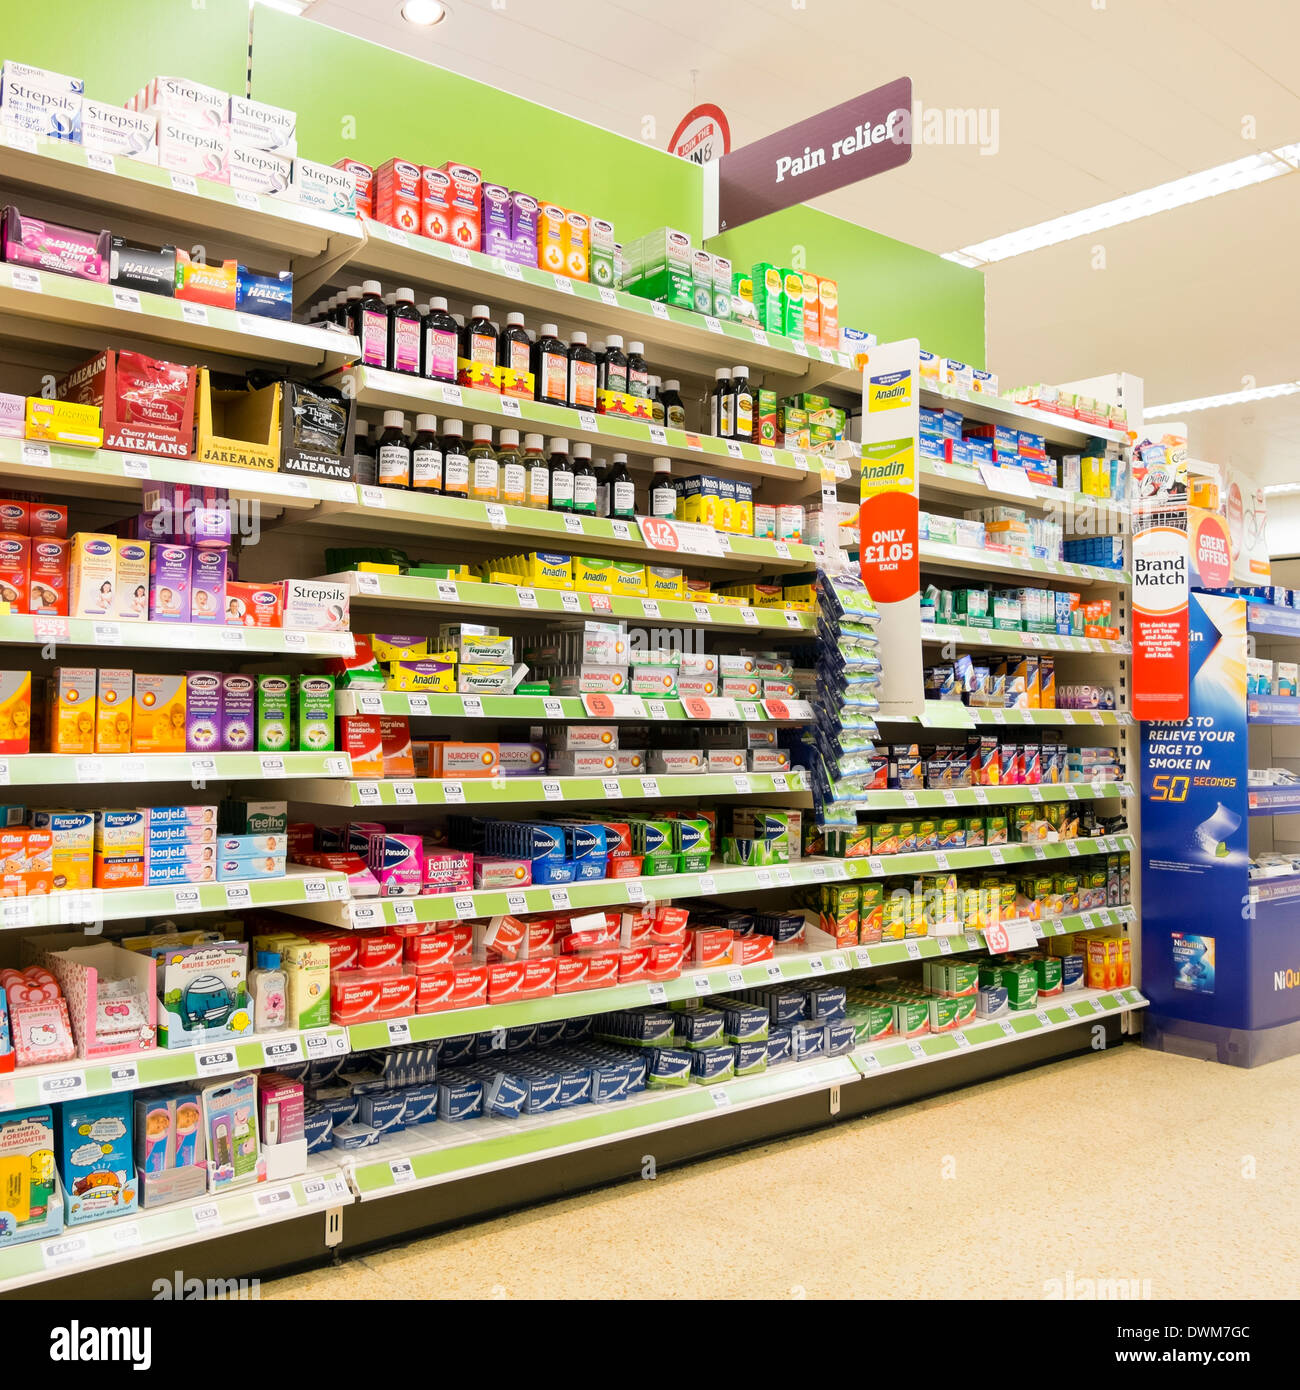 Pain relief tablets for sale in a supermarket, UK. - Stock Image